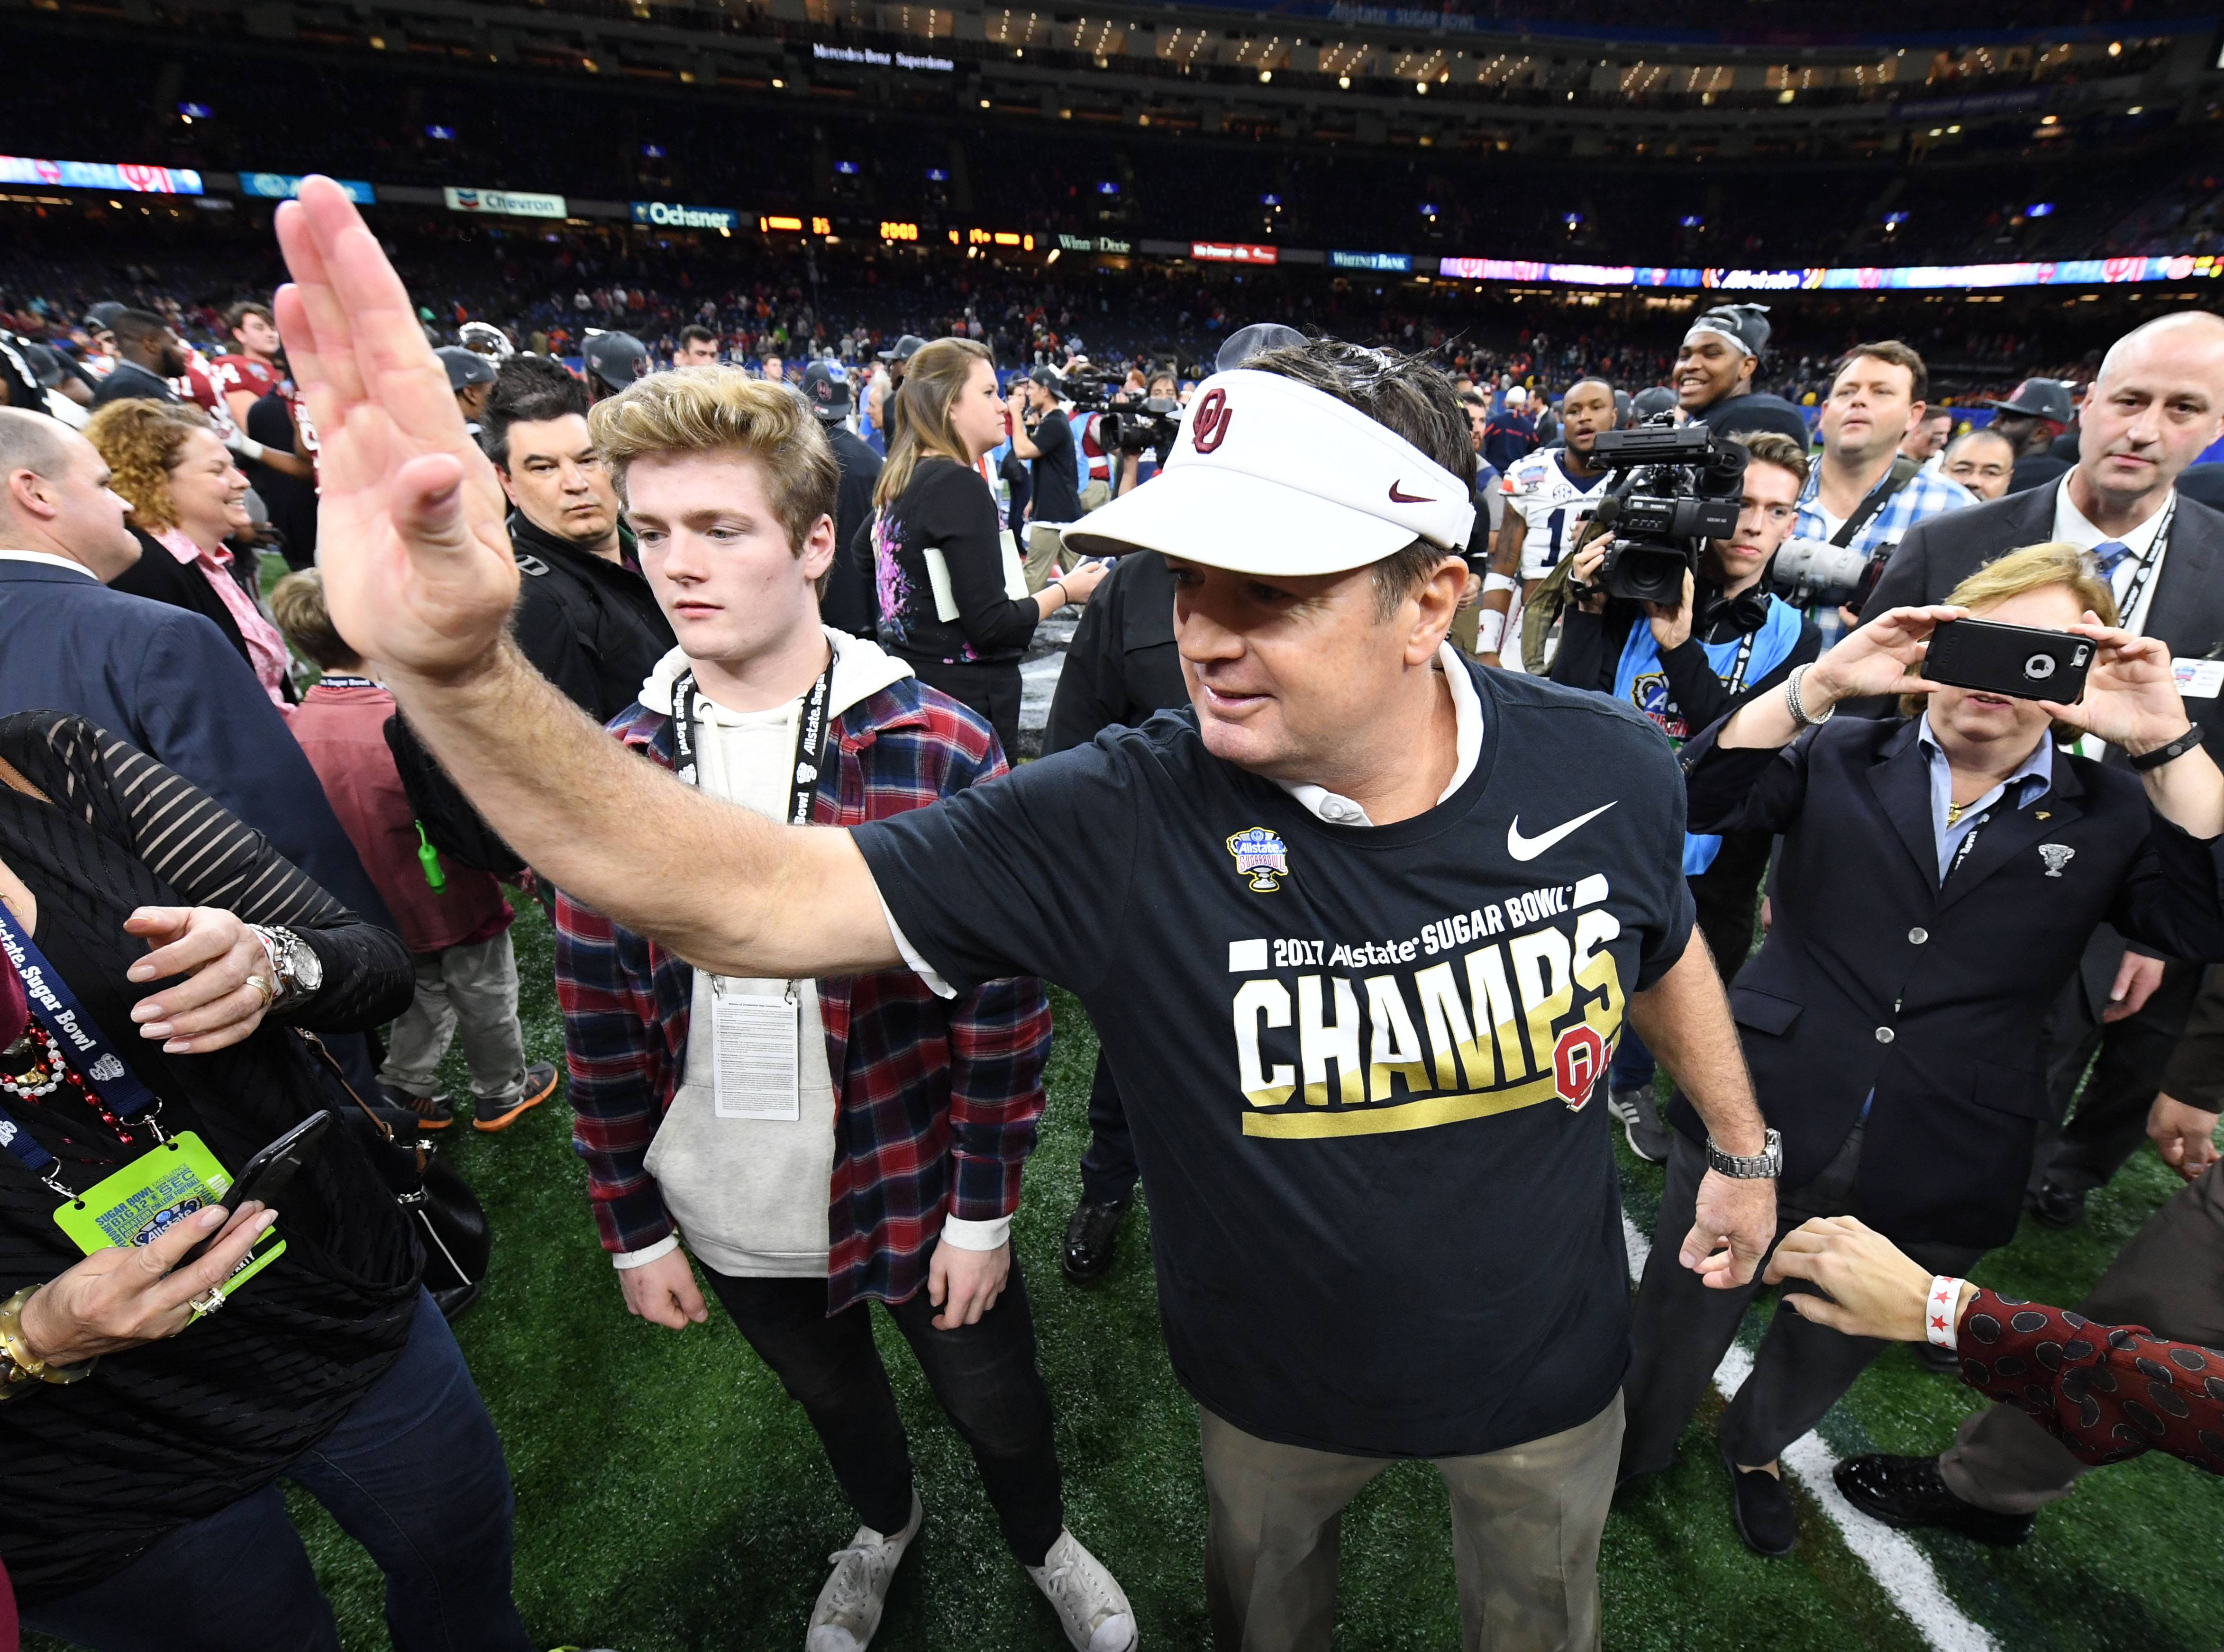 Bob stoops coaching resume controversial topic for research papers